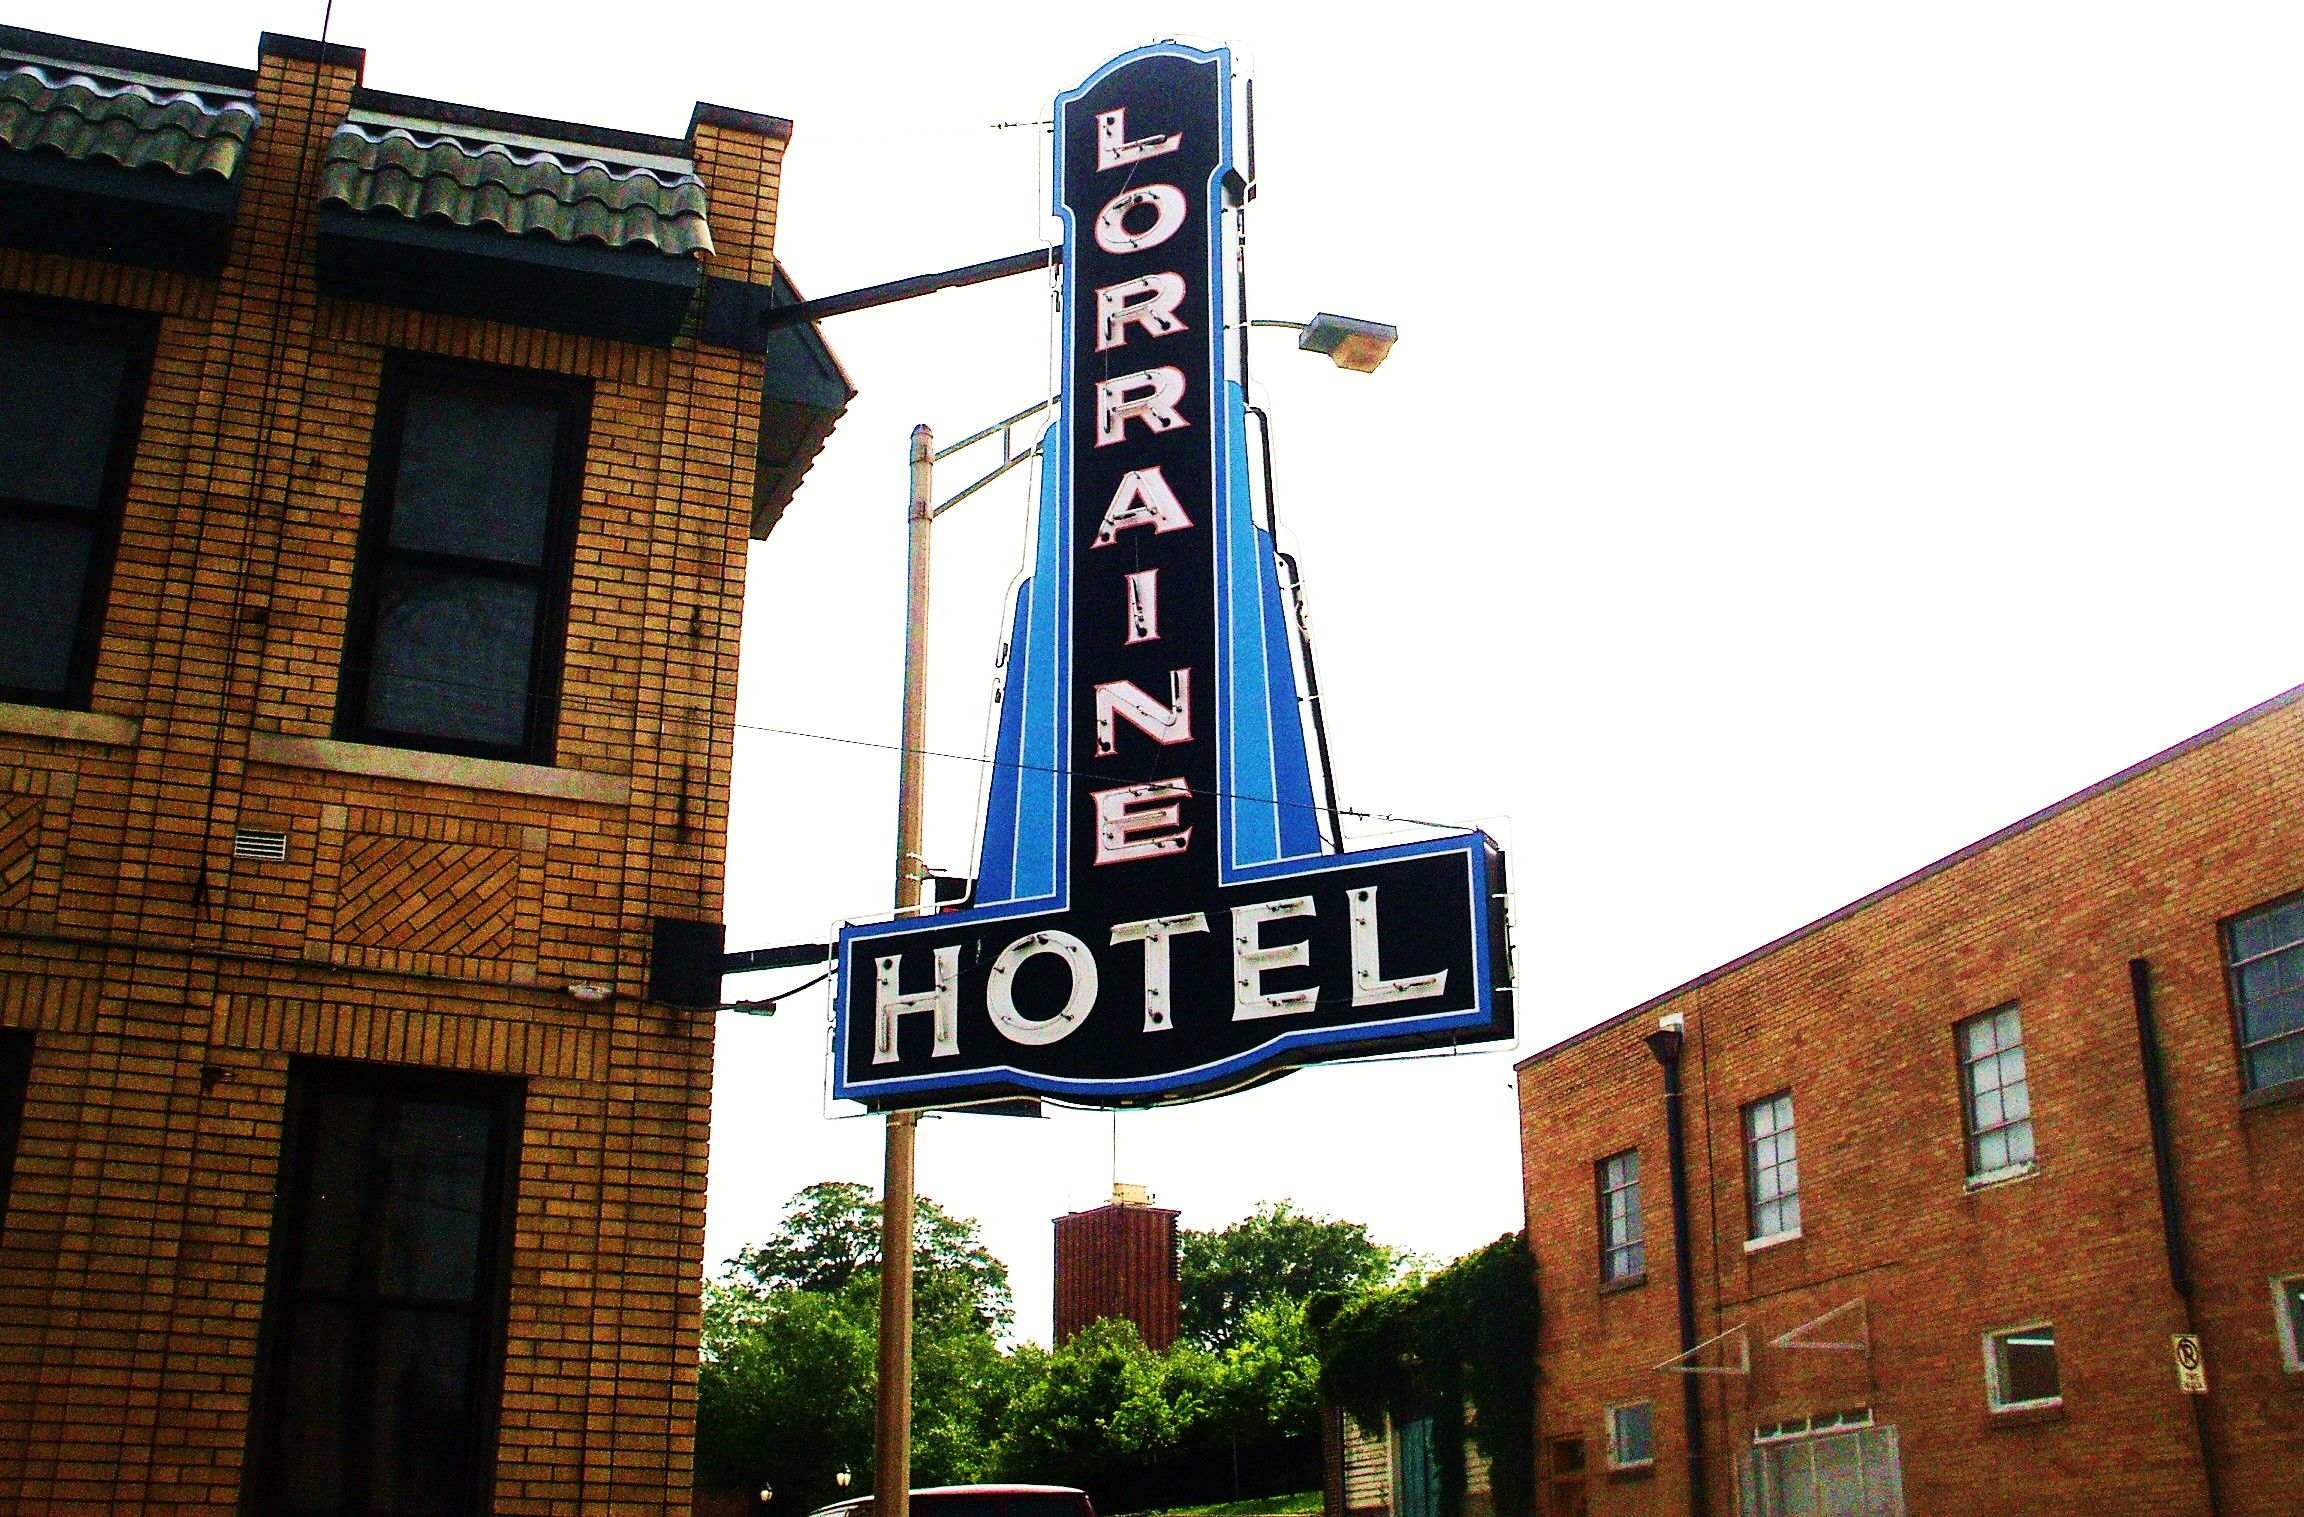 Lorraine Hotel Memphis Tn April 4 1968 The Death Of Dr Martin